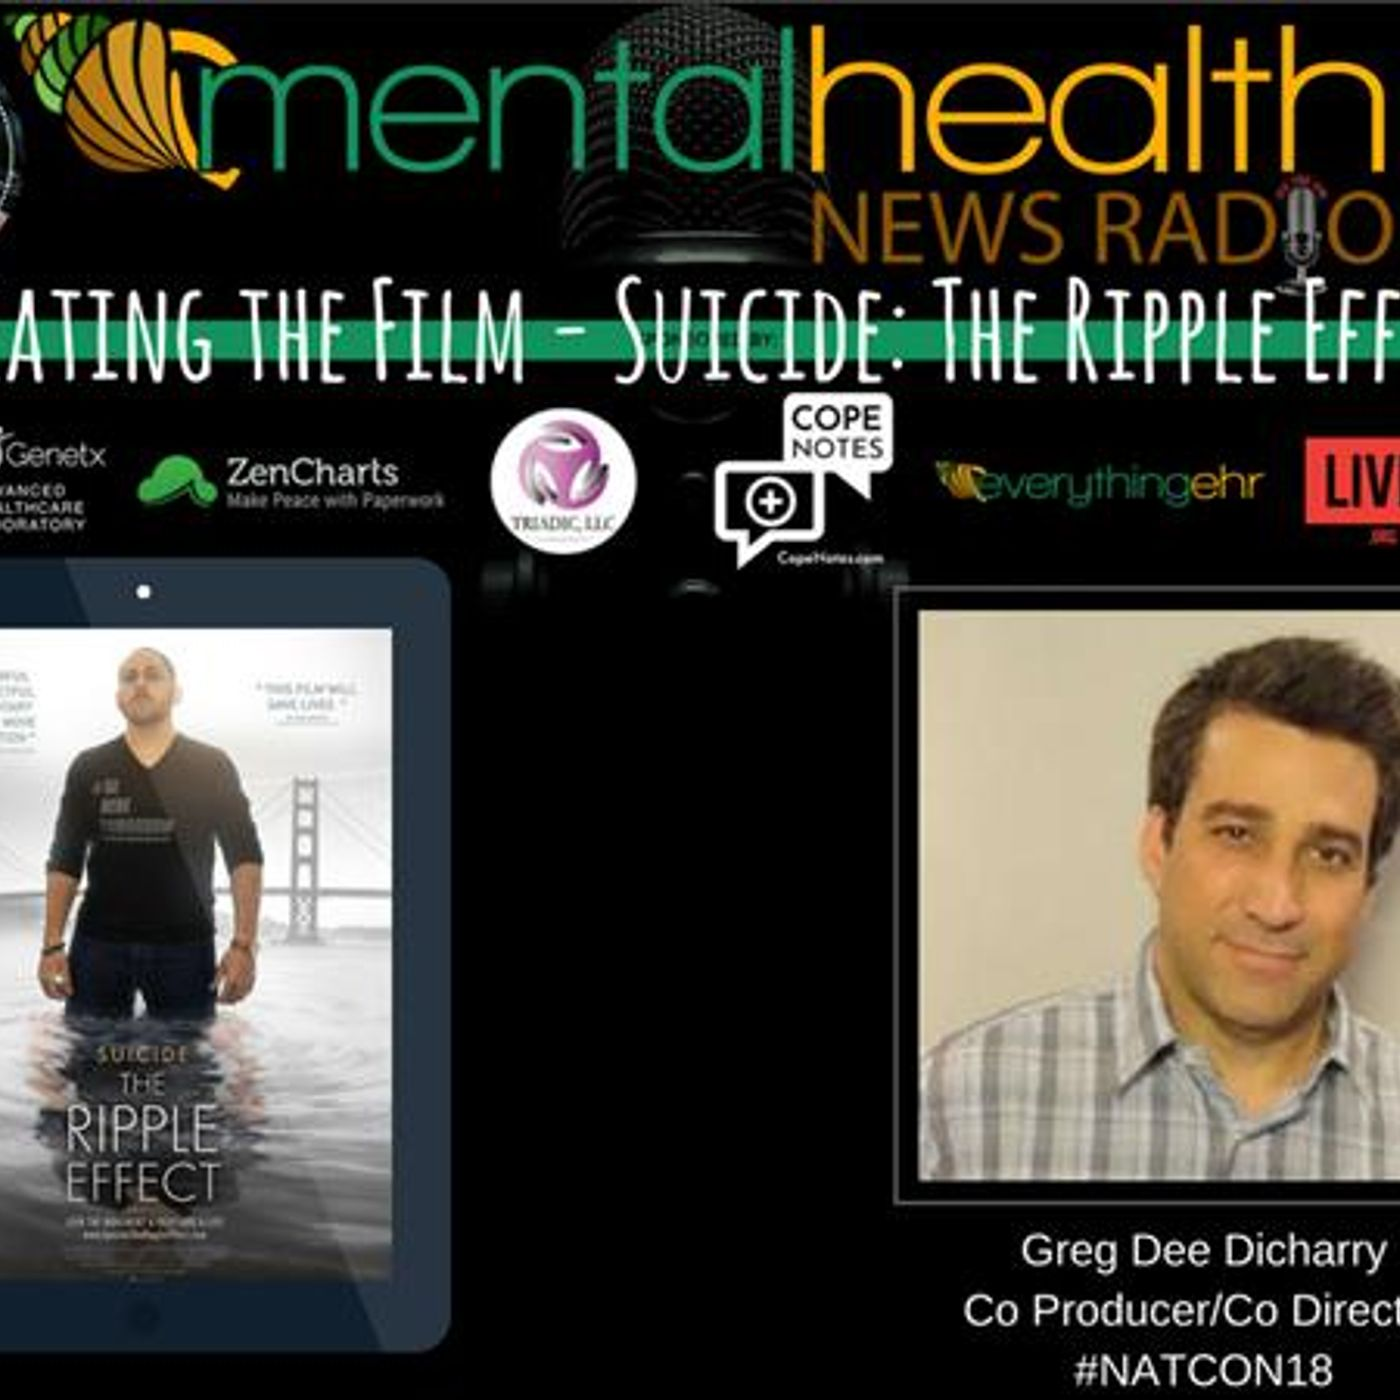 Mental Health News Radio - Creating the Film - Suicide: The Ripple Effect with Greg Dee Dicharry